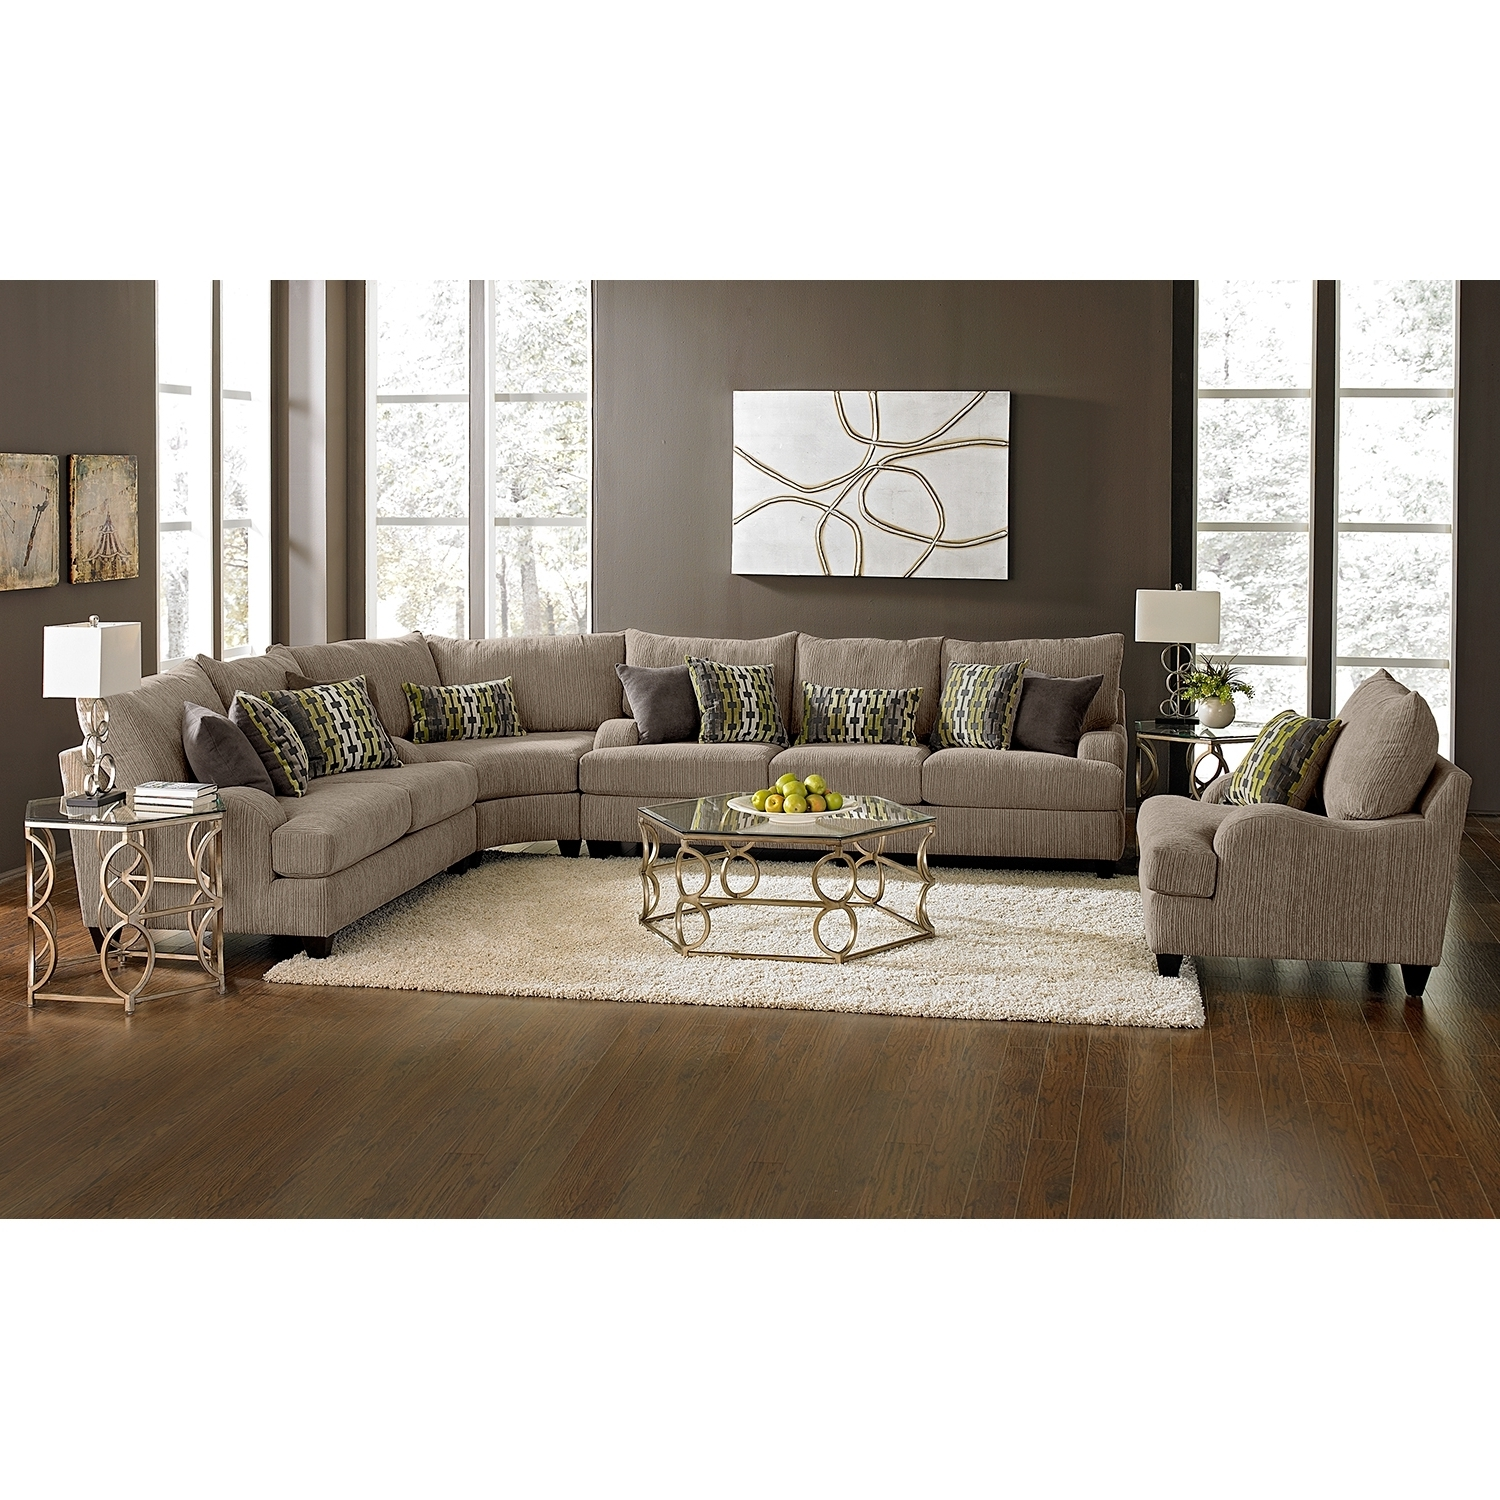 Value City Sectional Sofas regarding Best and Newest Santa Monica Ii Upholstery 3 Pc. Sectional - Value City Furniture